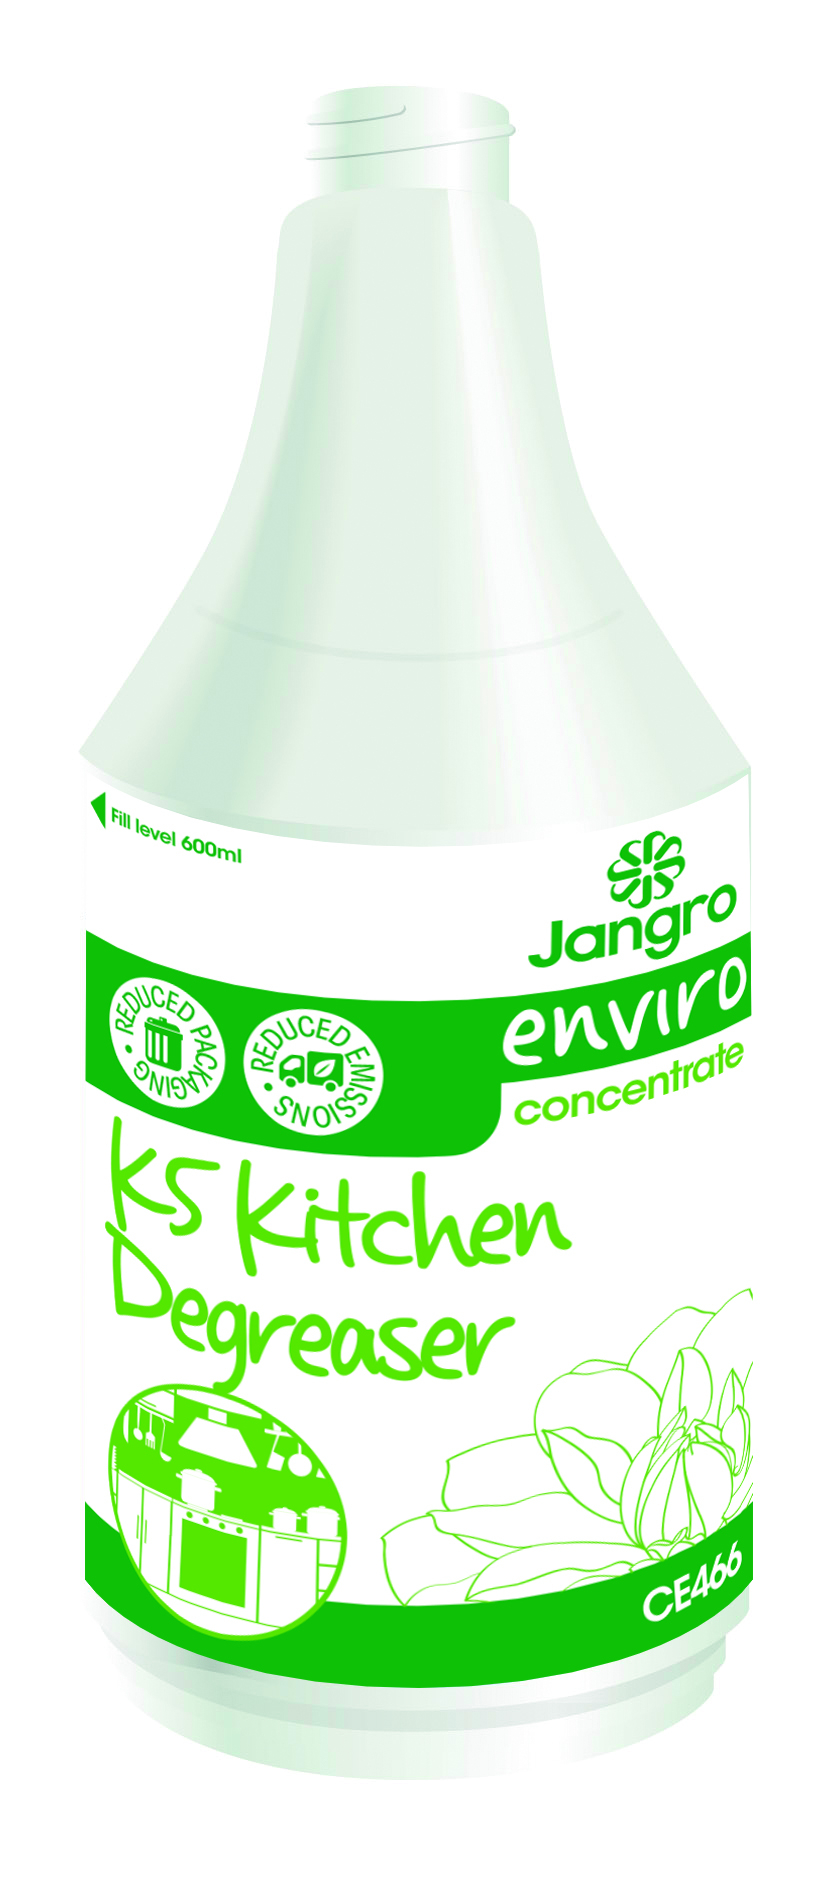 Spray Bottle Enviro K5 Kitchen Degreaser